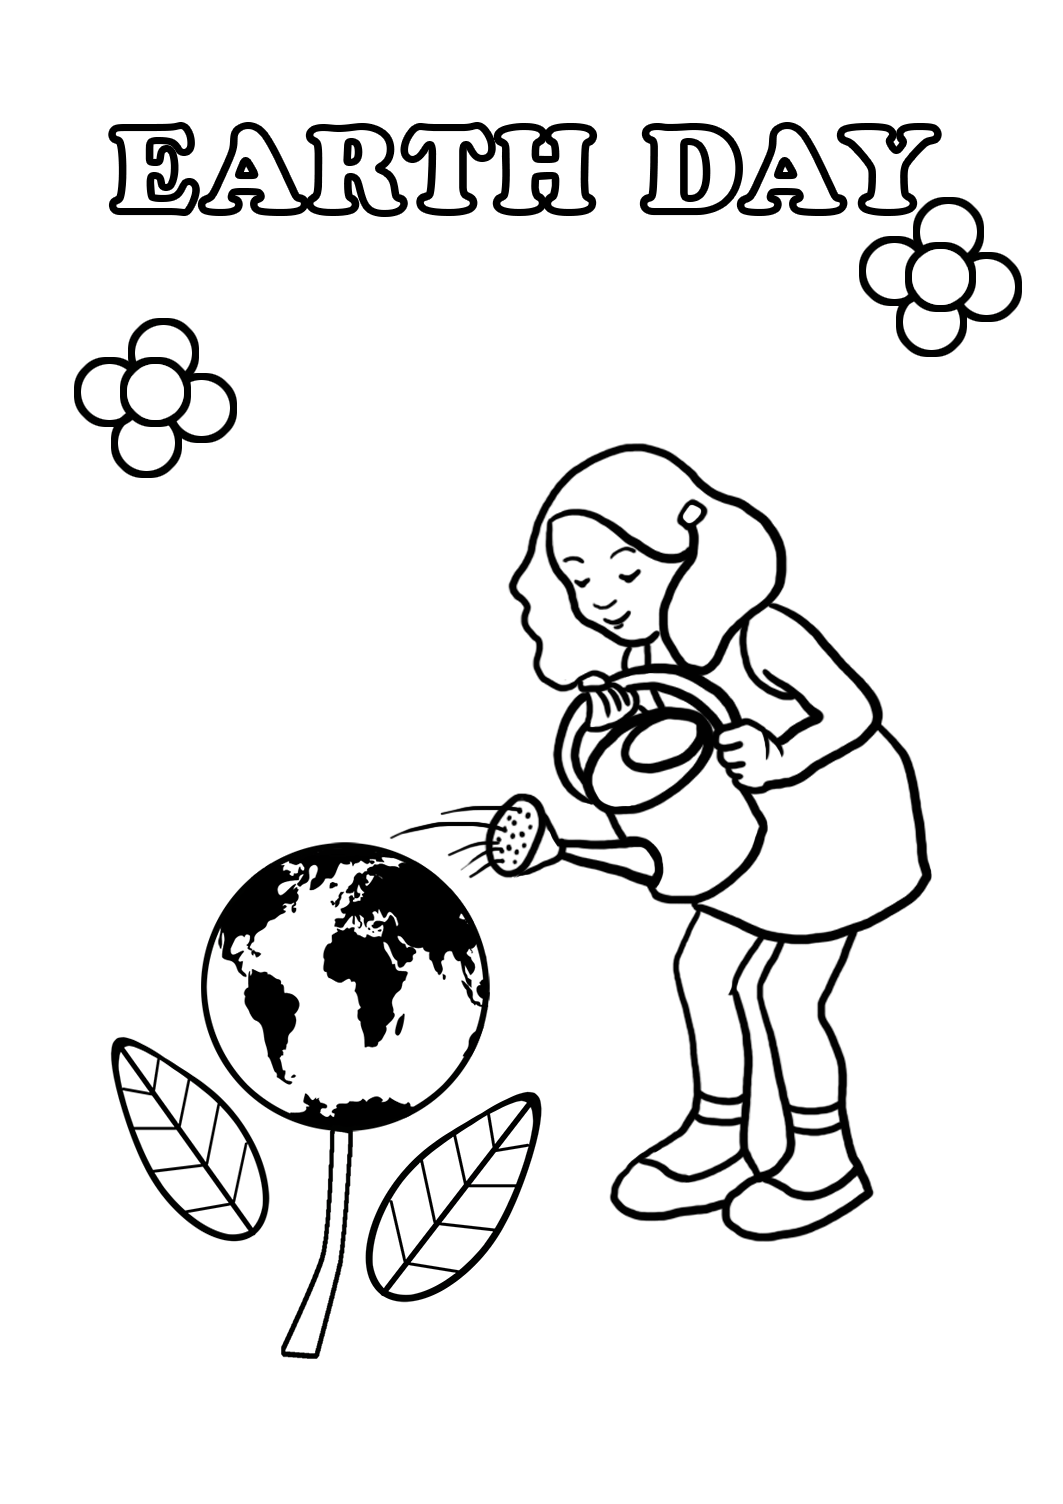 Earth Day coloring page girl watering eart